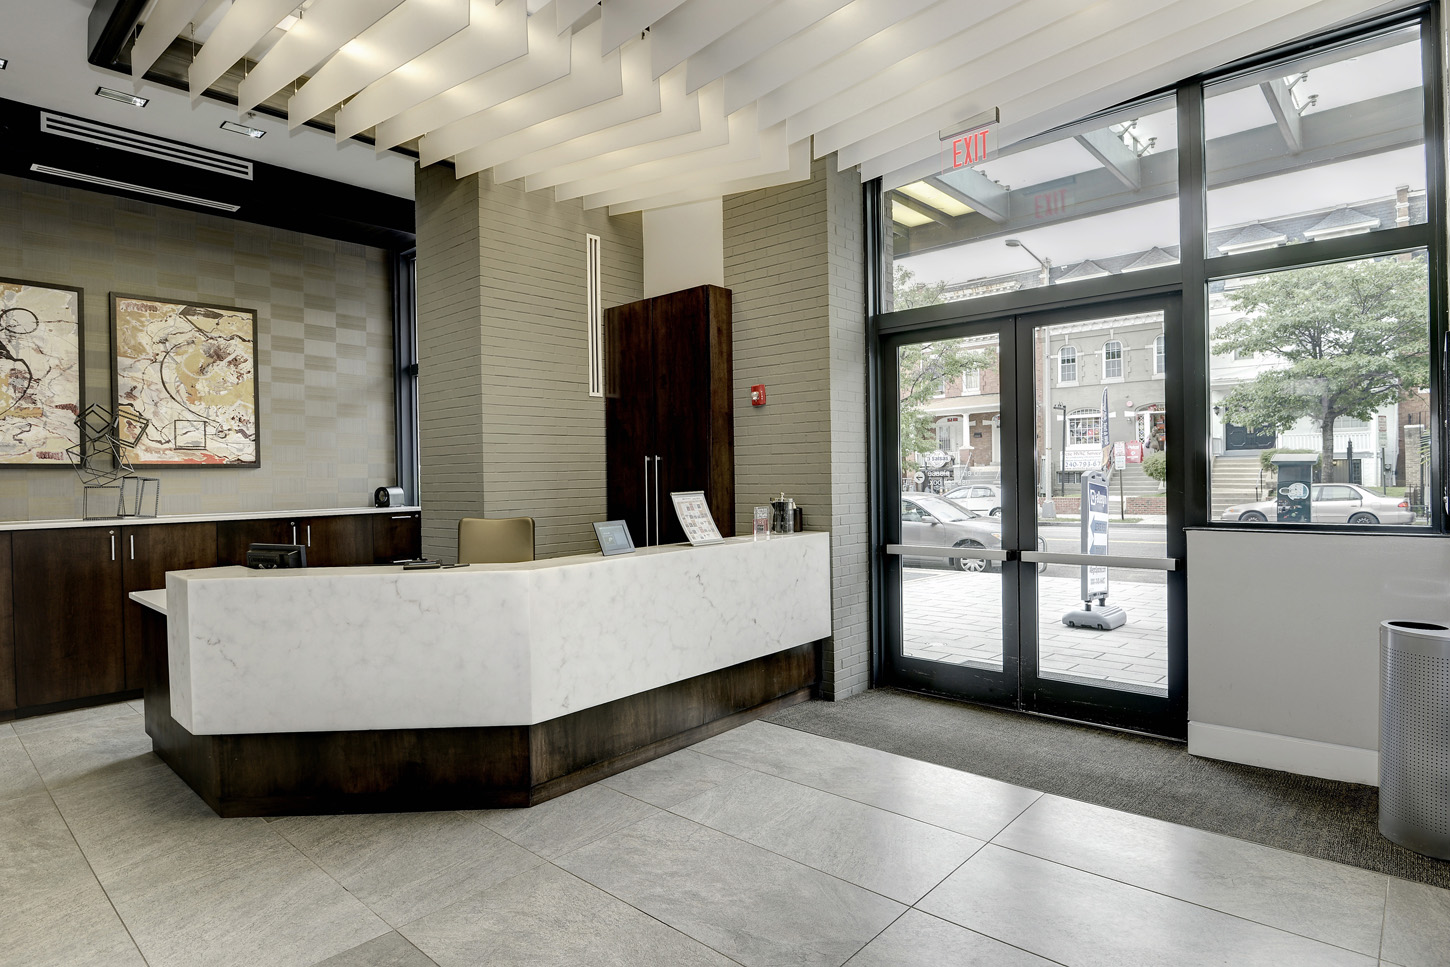 Lobby entrance with large marble concierge desk and abstract art behind it